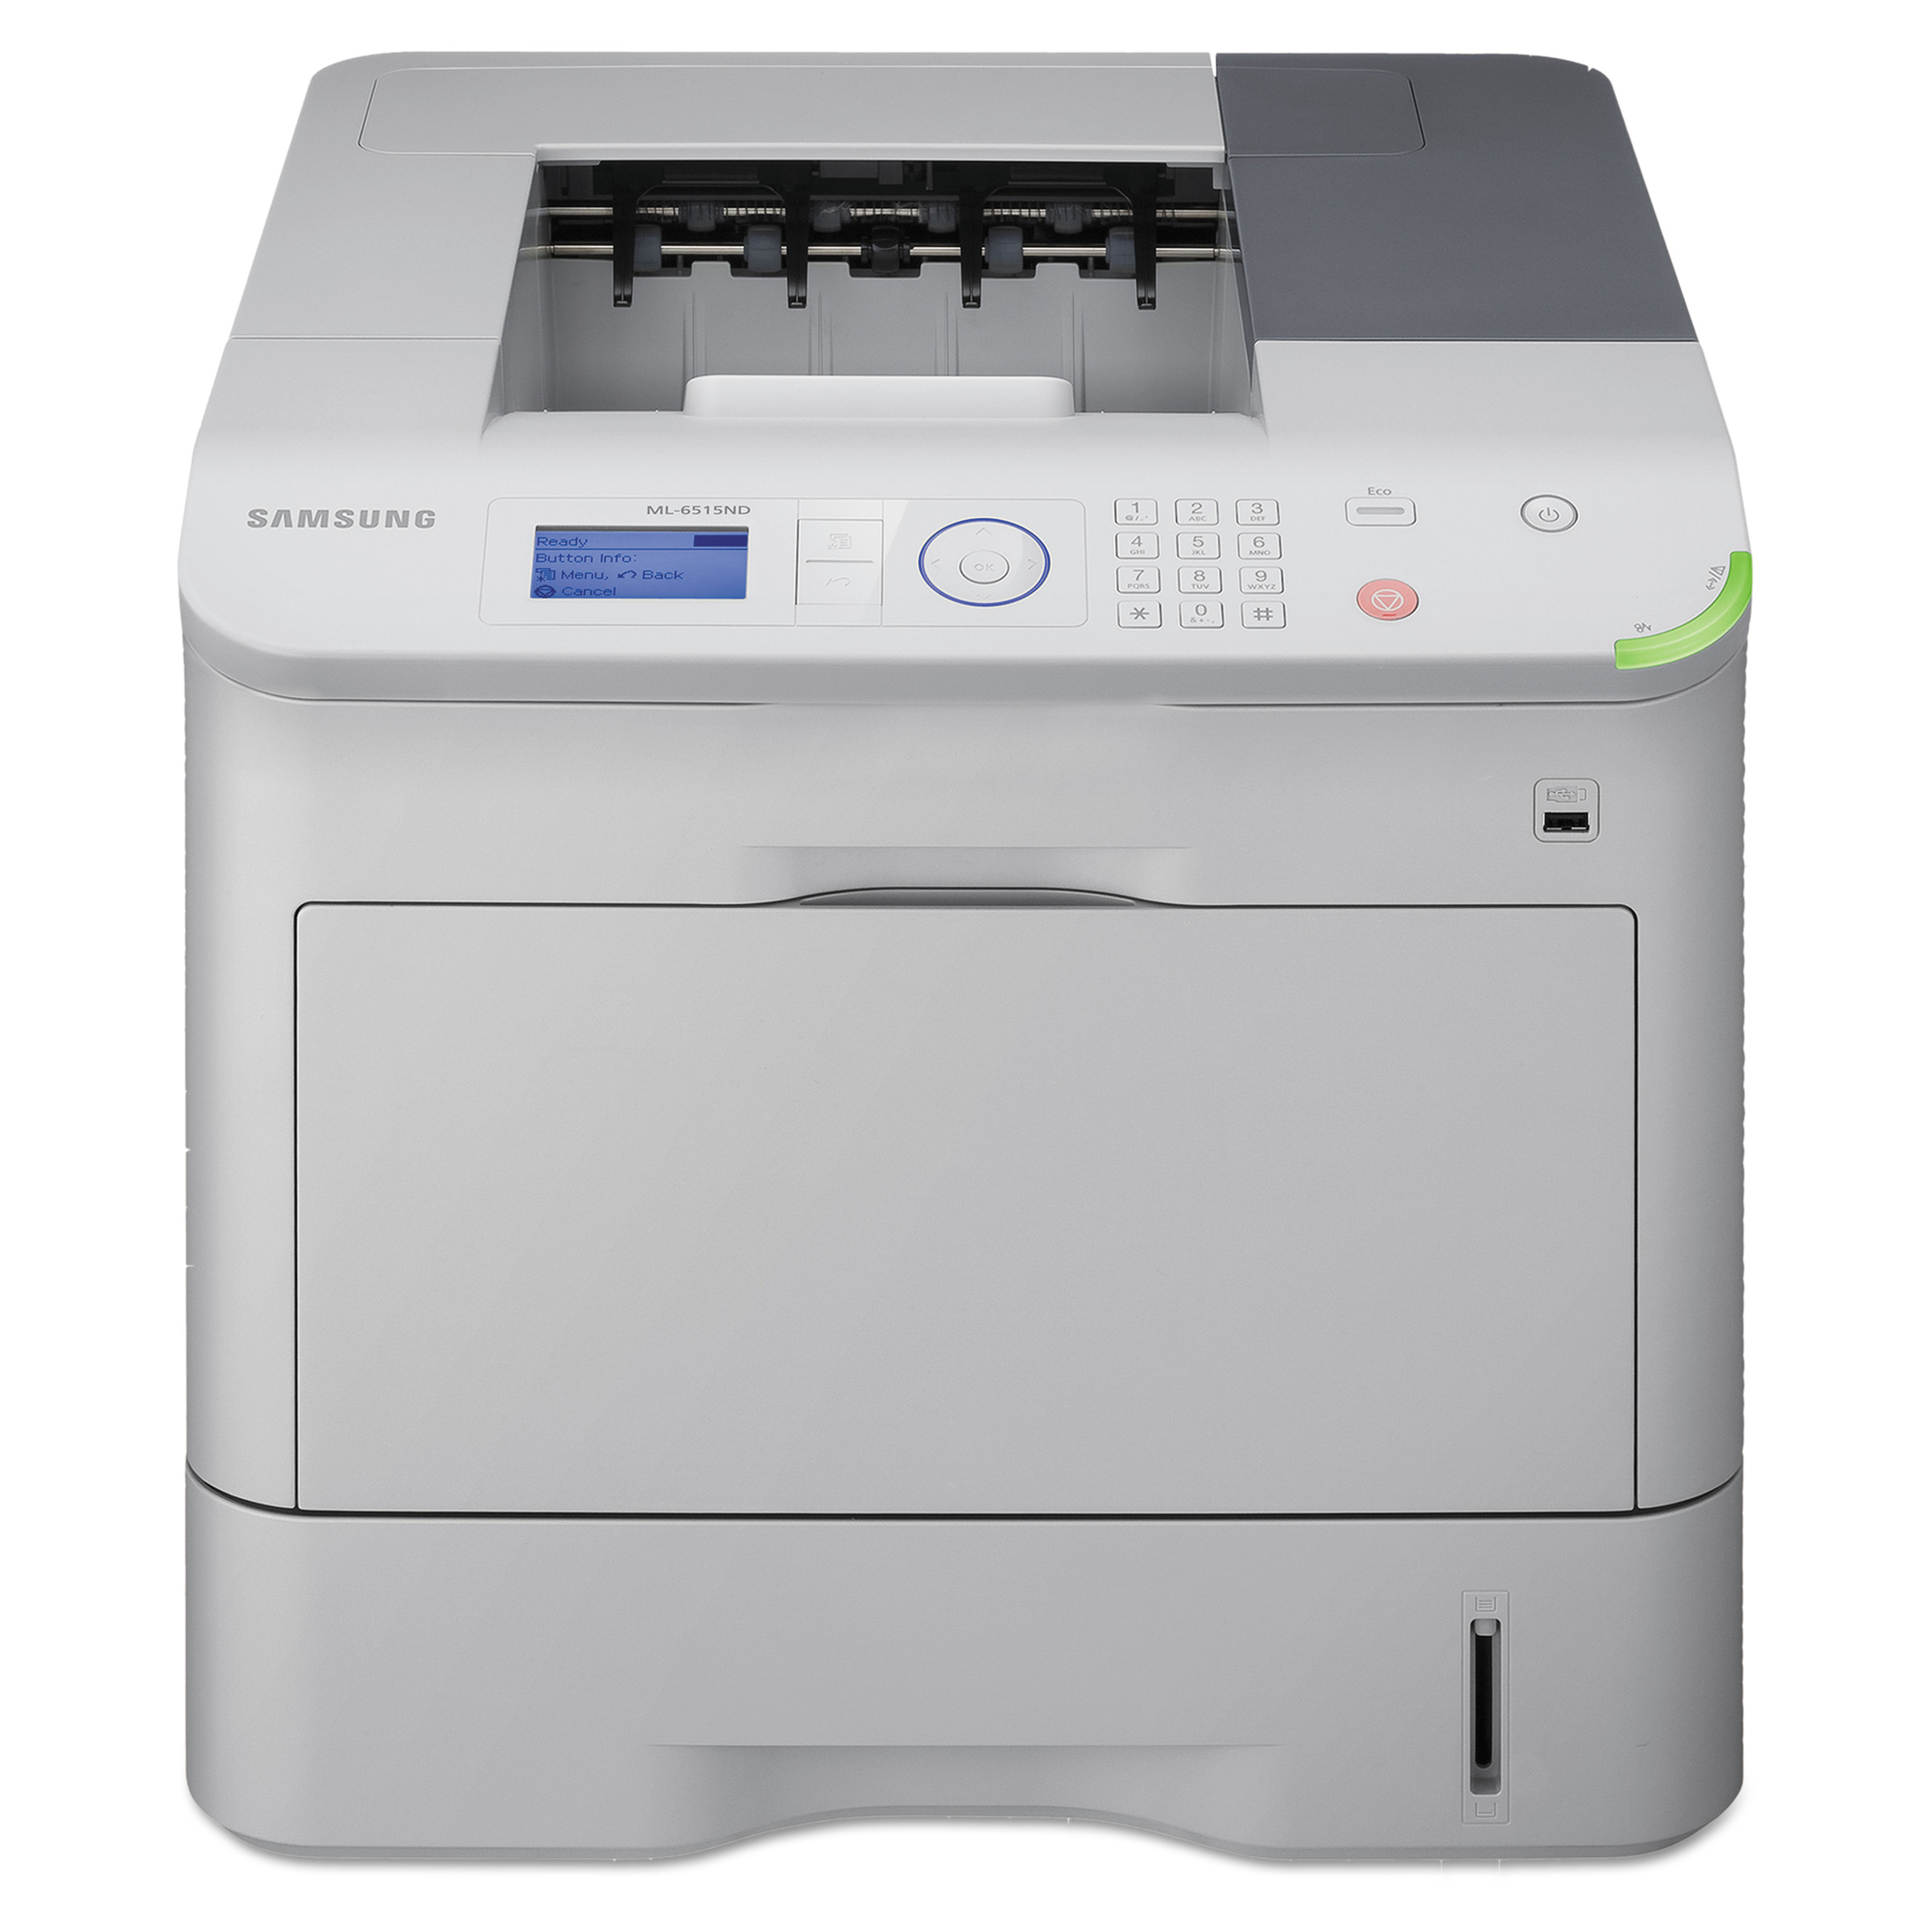 Samsung ML-6500 Series Mono Laser Printer, 600 MHz Dual Core by Samsung